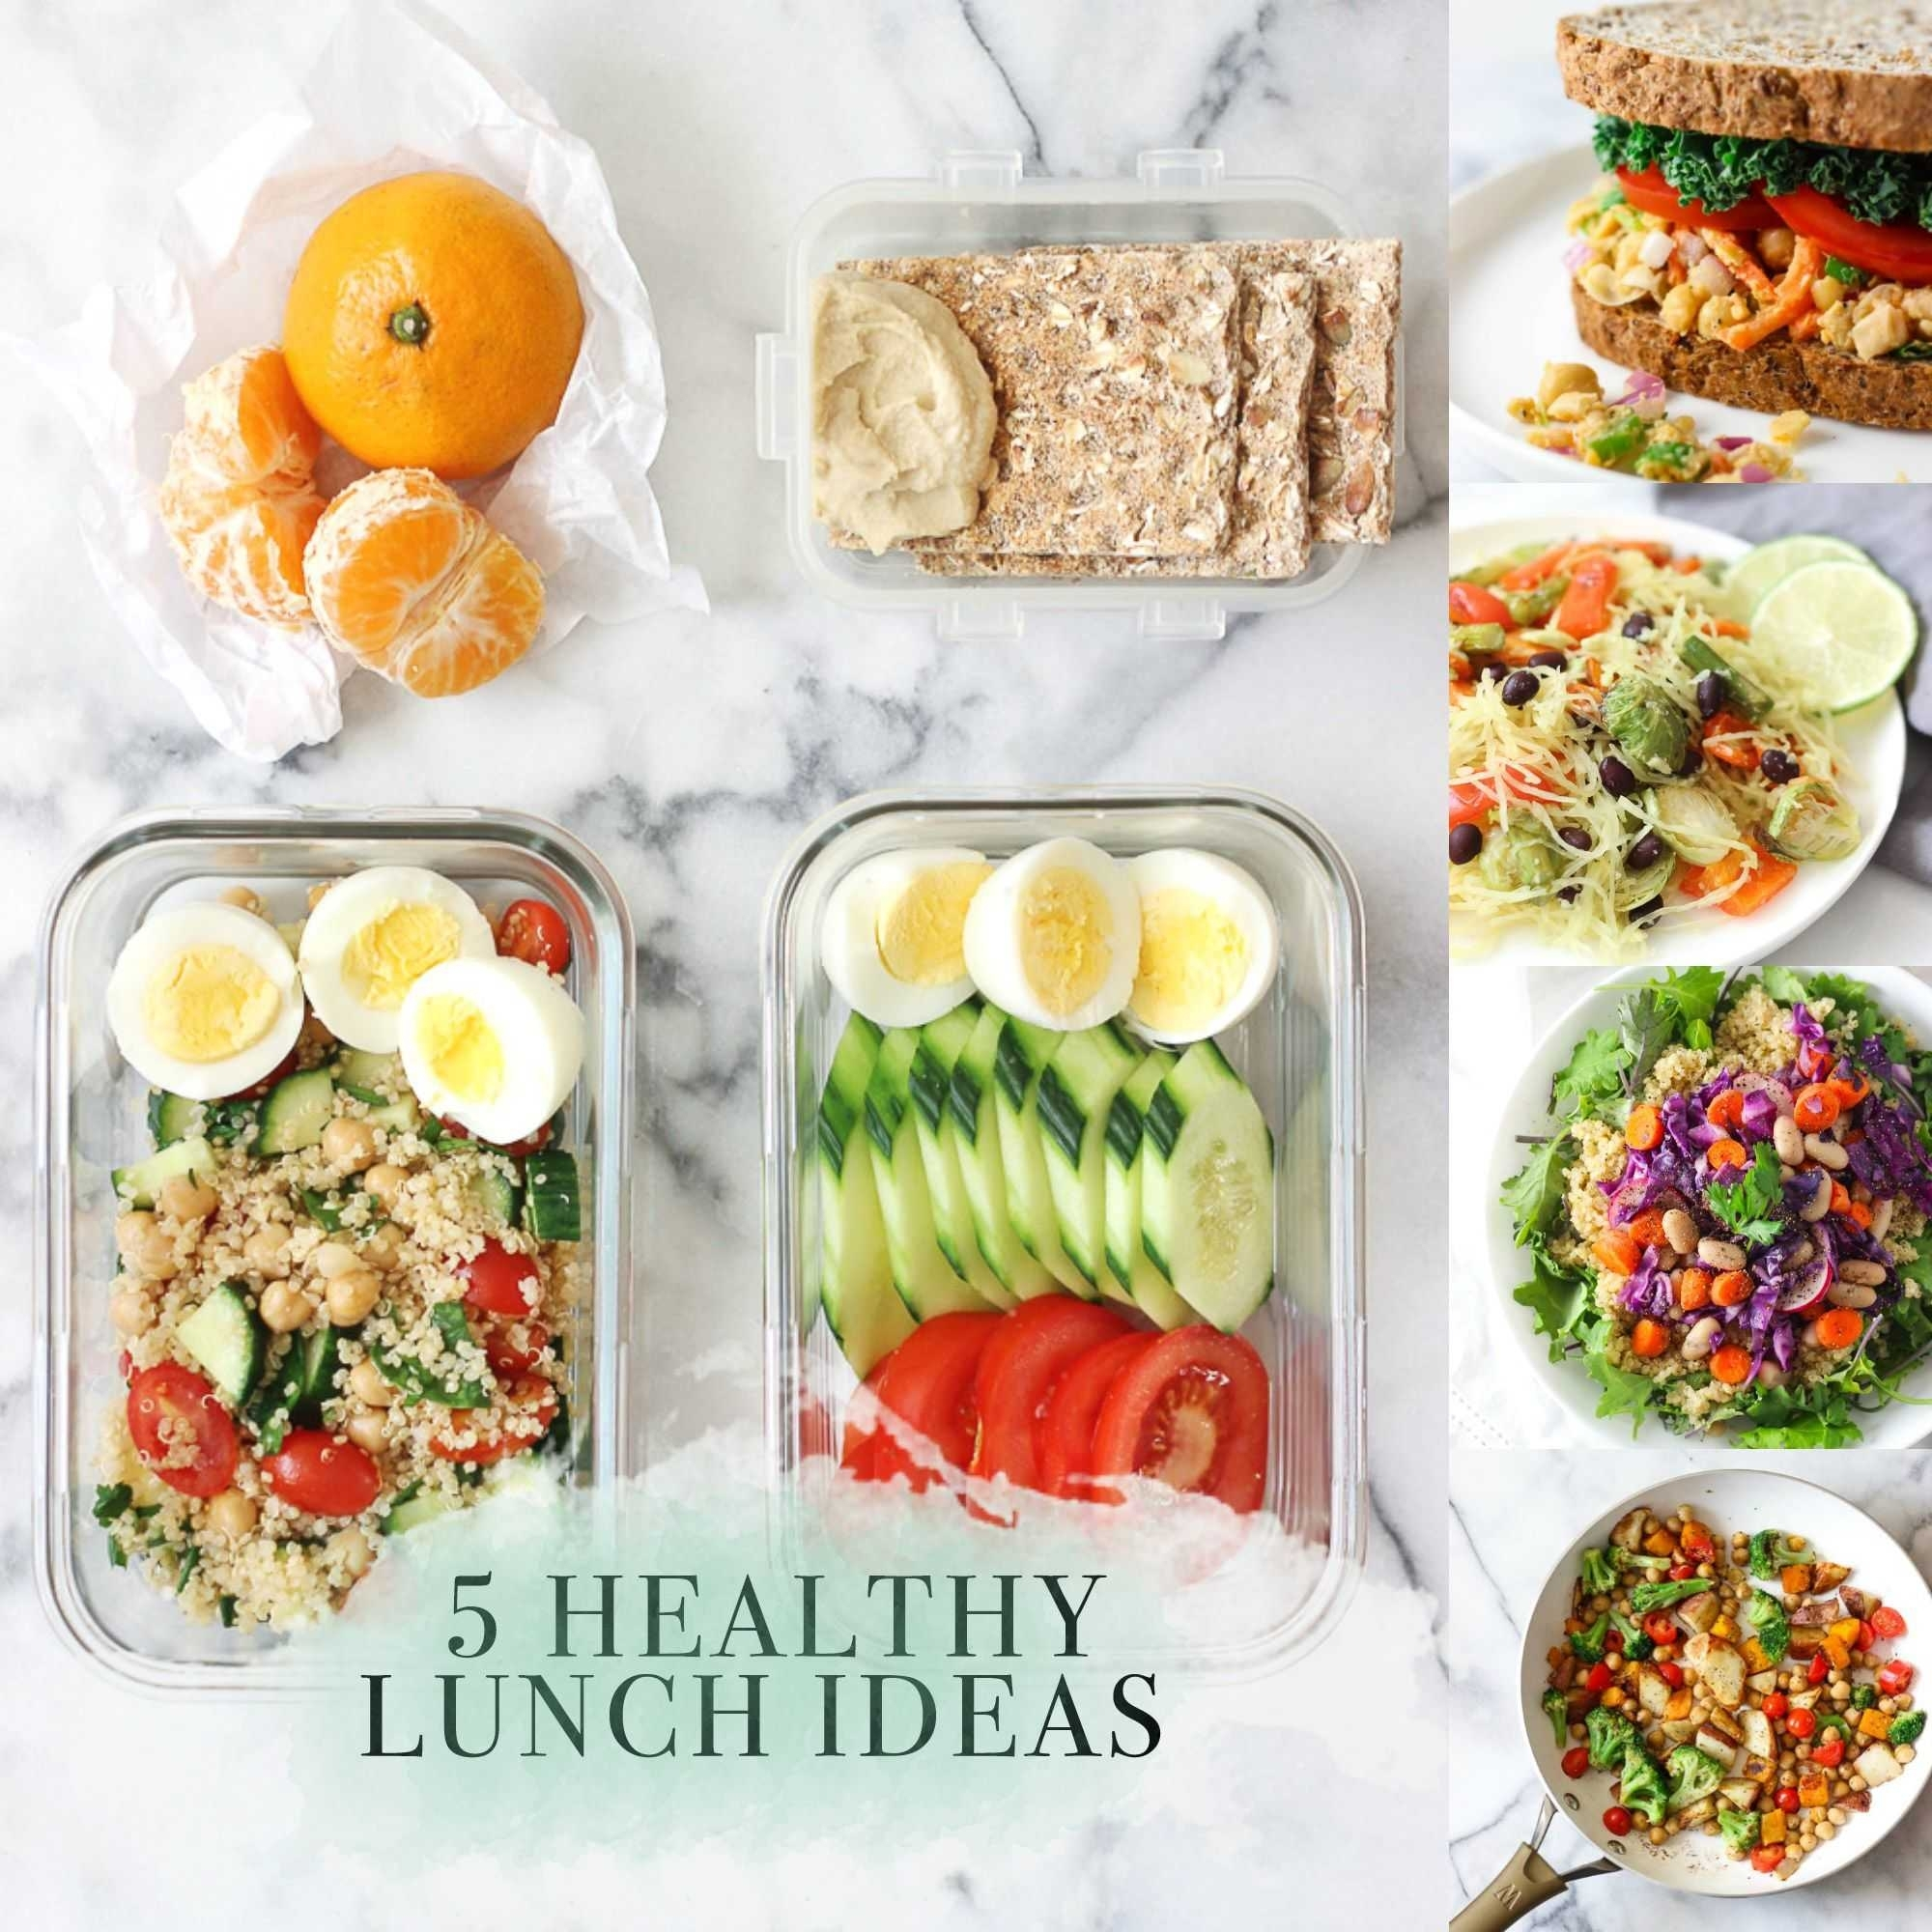 10 Beautiful Quick Healthy Lunch Ideas For Work %name 2020